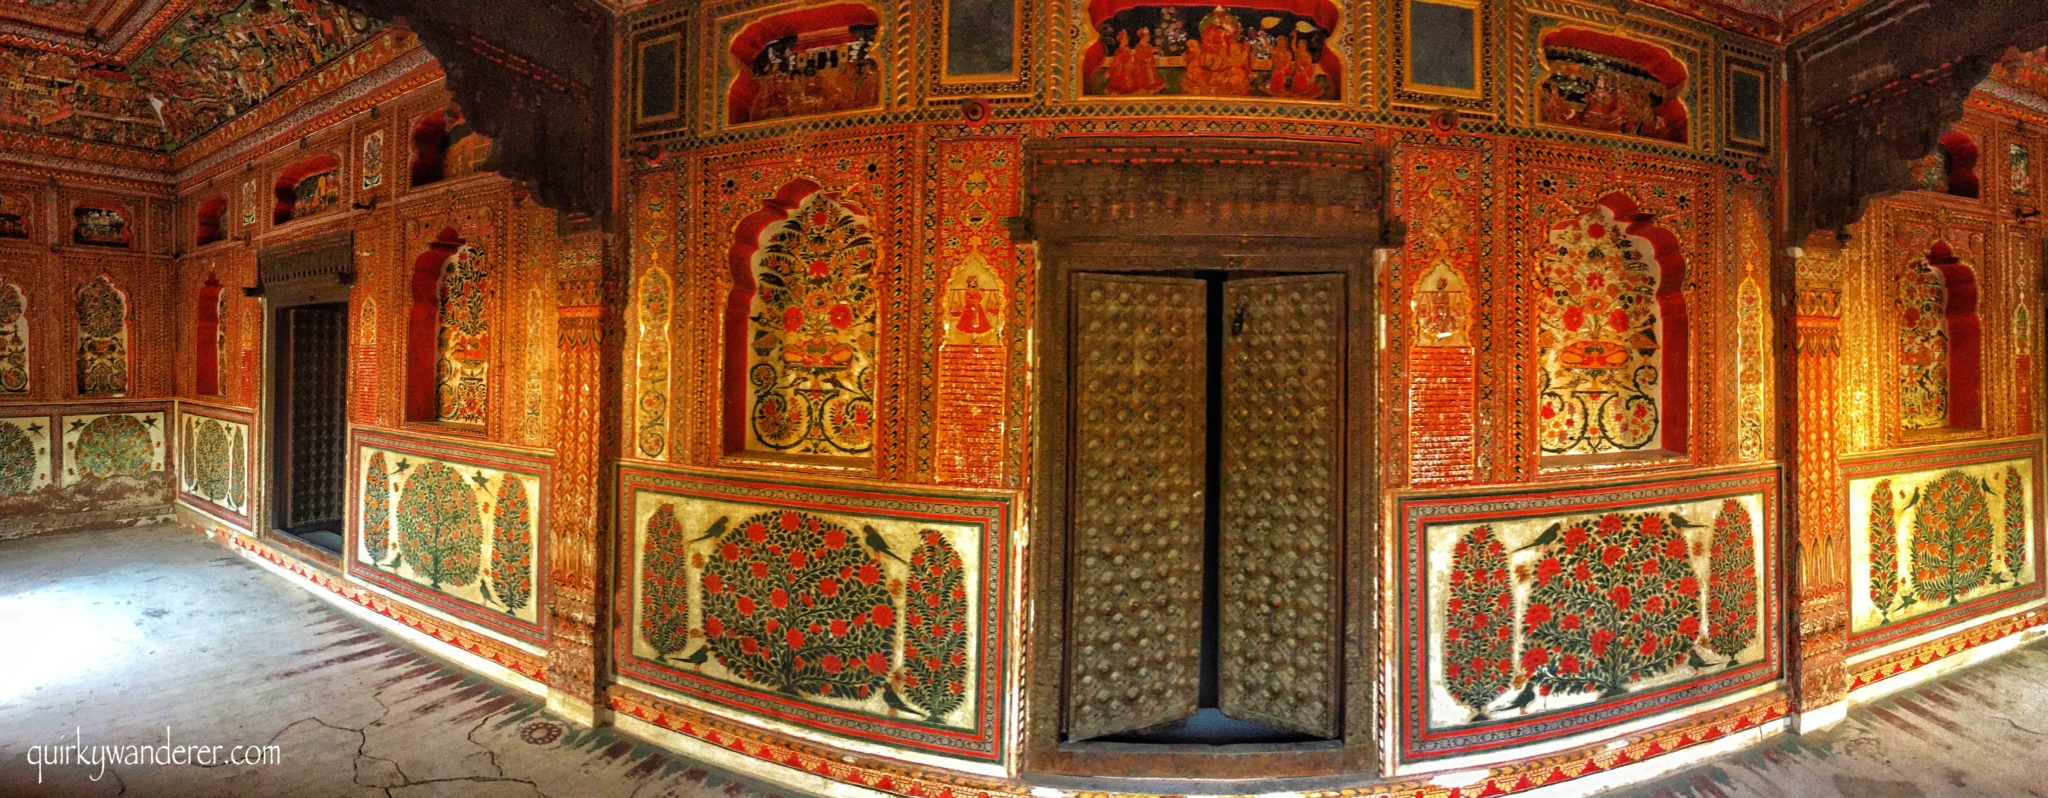 Best places to see in Shekhawati